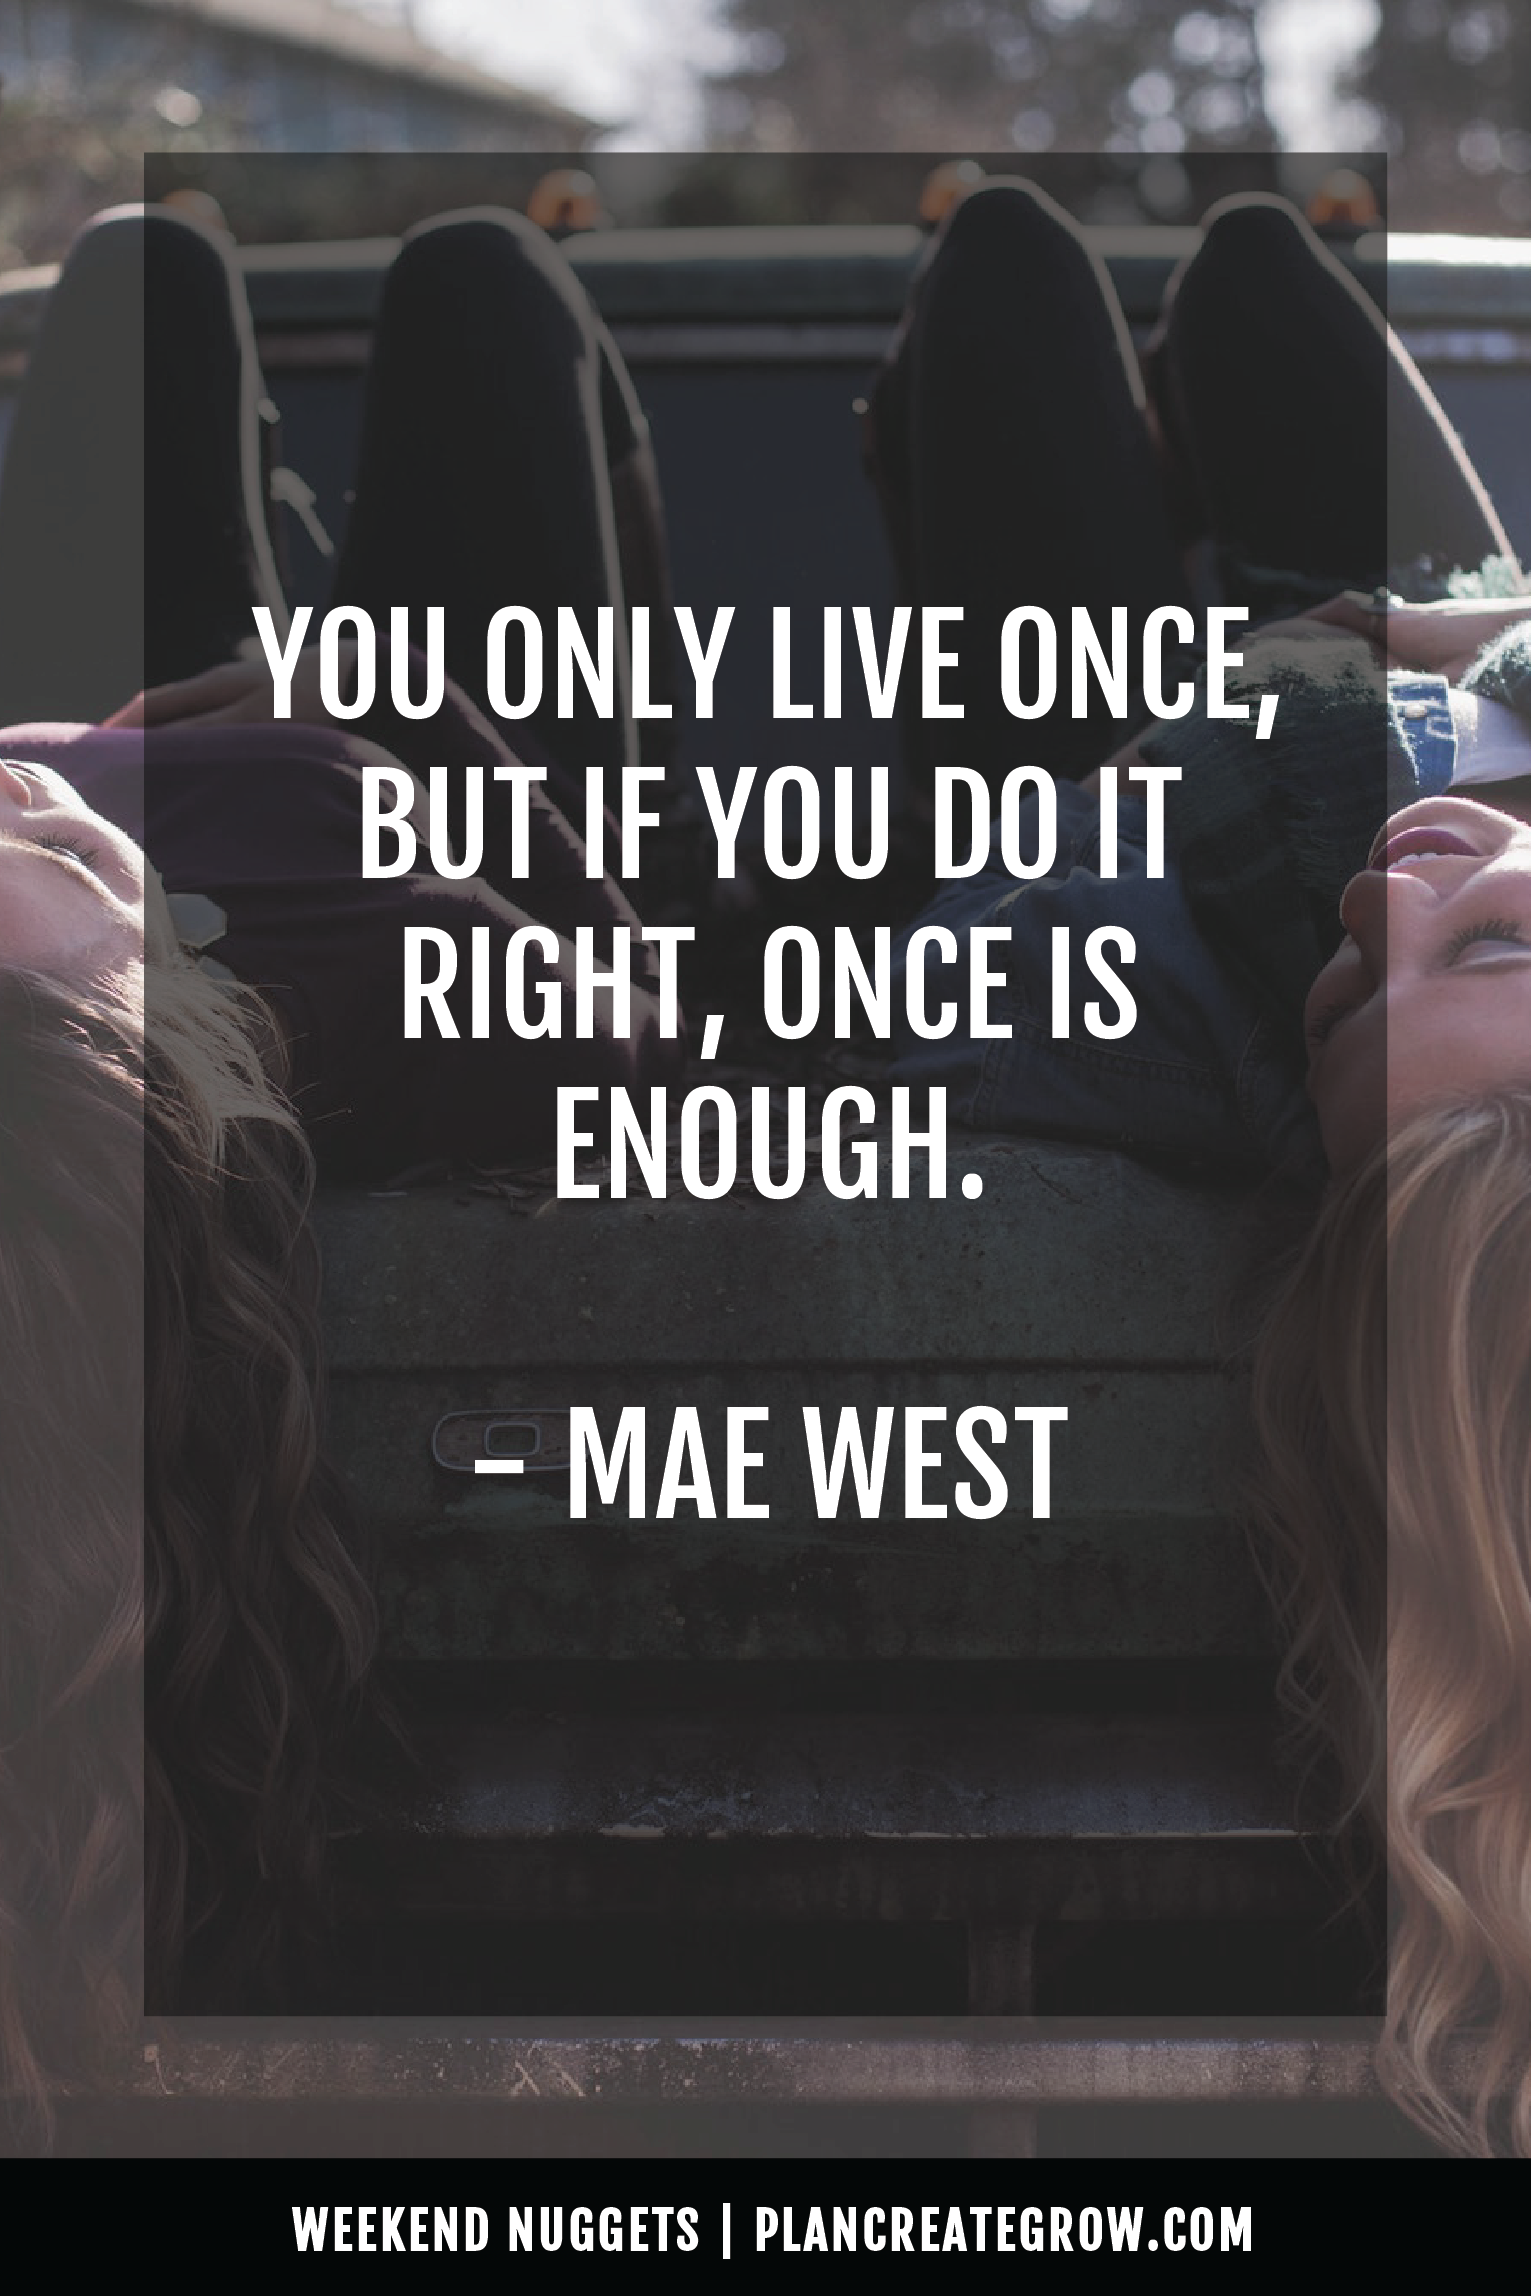 """""""You only live once, but if you do it right, once is enough."""" - Mae West  This image forms part of a series called Weekend Nuggets - a collection of quotes and ideas curated to delight and inspire - shared each weekend. For more, visit plancreategrow.com/weekend-nuggets."""